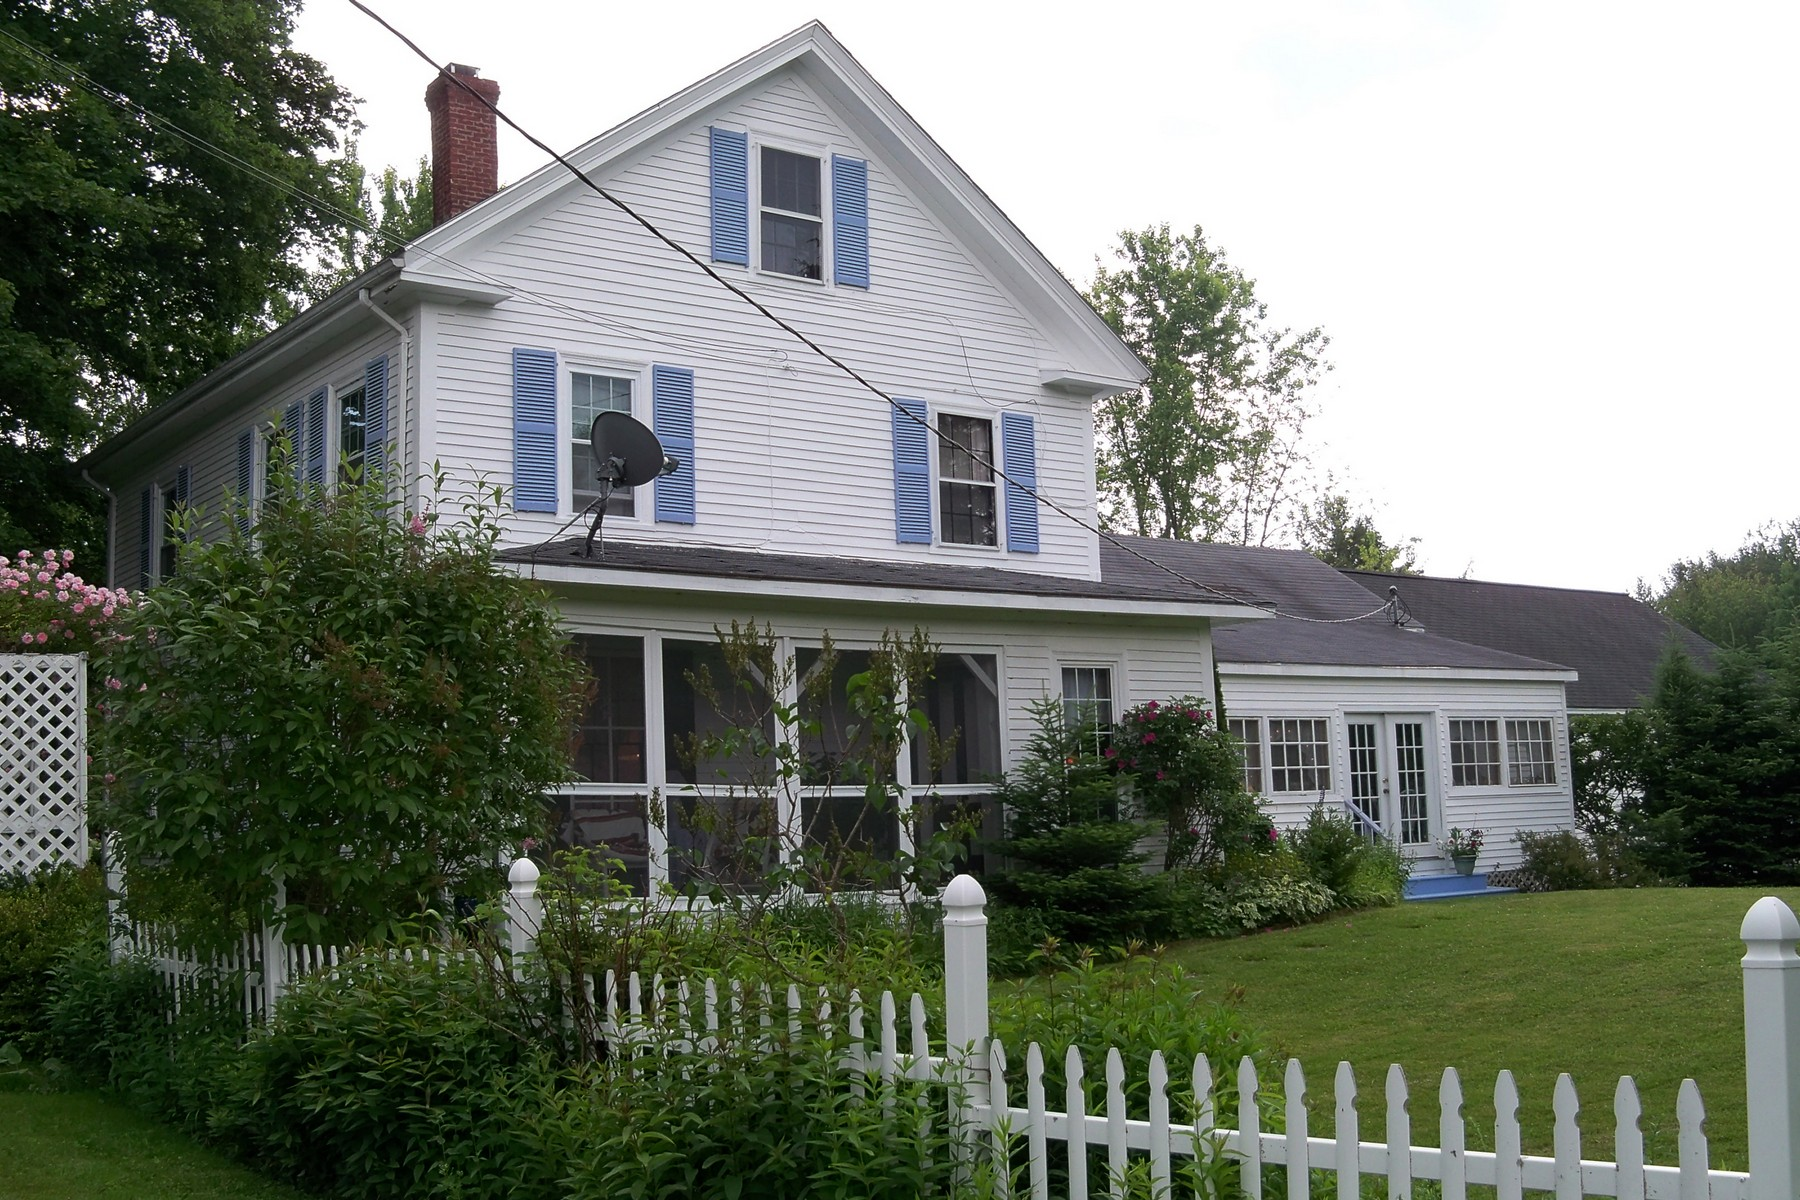 Single Family Home for Sale at 14 Angel's Farm 91 Park Street Cherryfield, Maine 04622 United States